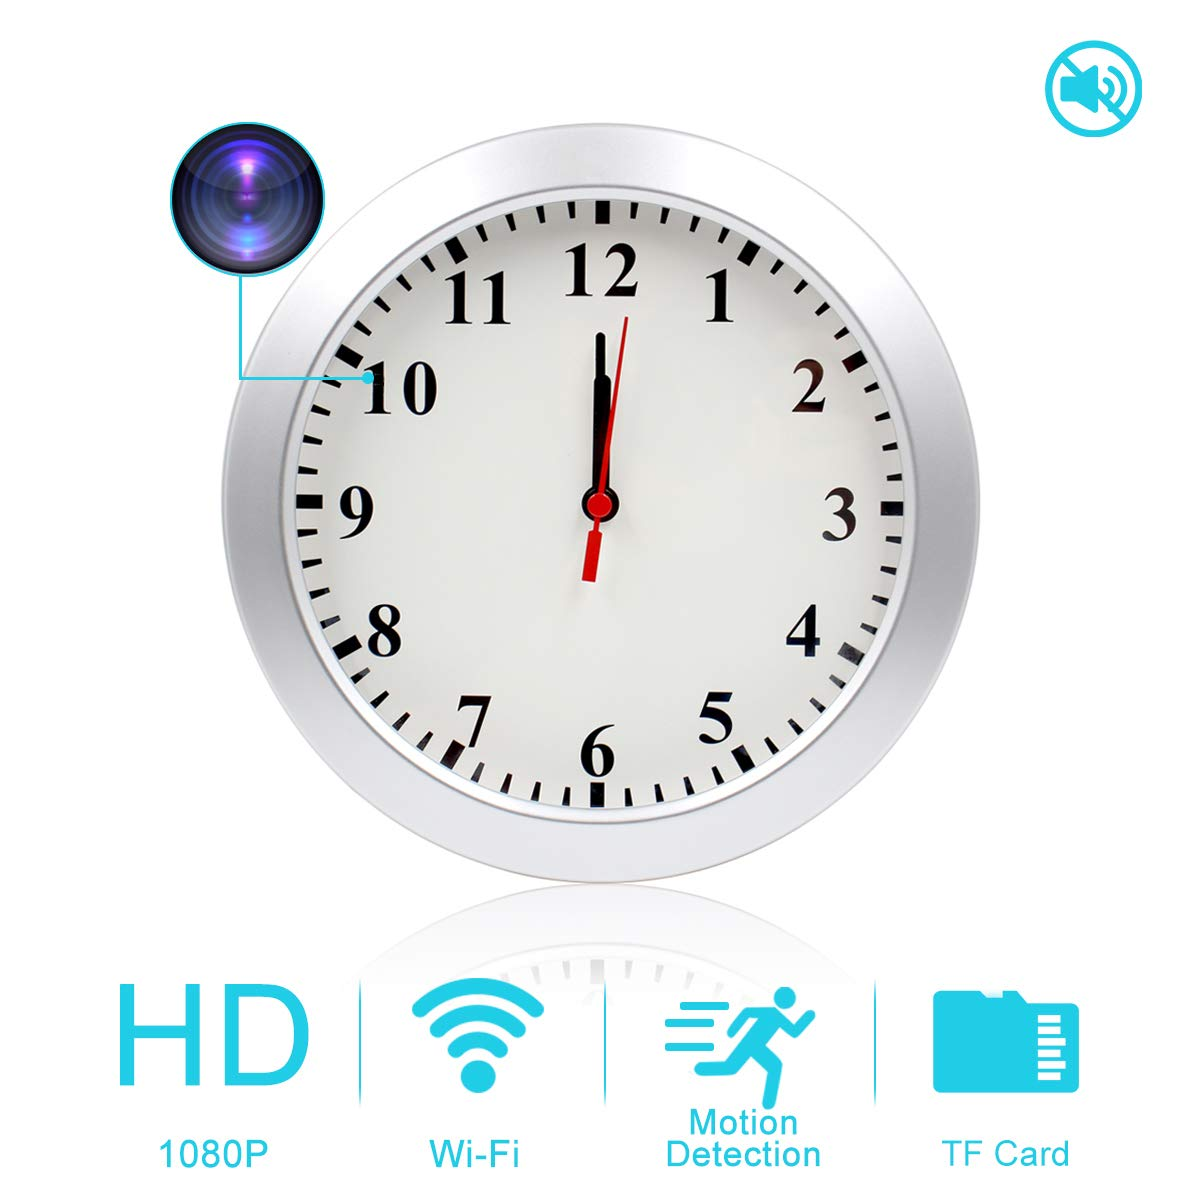 AMCSXH HD 1080P WiFi Hidden Camera Wall Clock Spy Camera with Motion Detection, Security for Home and Office, Nanny Cam/Pet Cam/Wall Clock Cam, Remote-Real Time Video, Support iOS/Android, Video only by AMCSXH